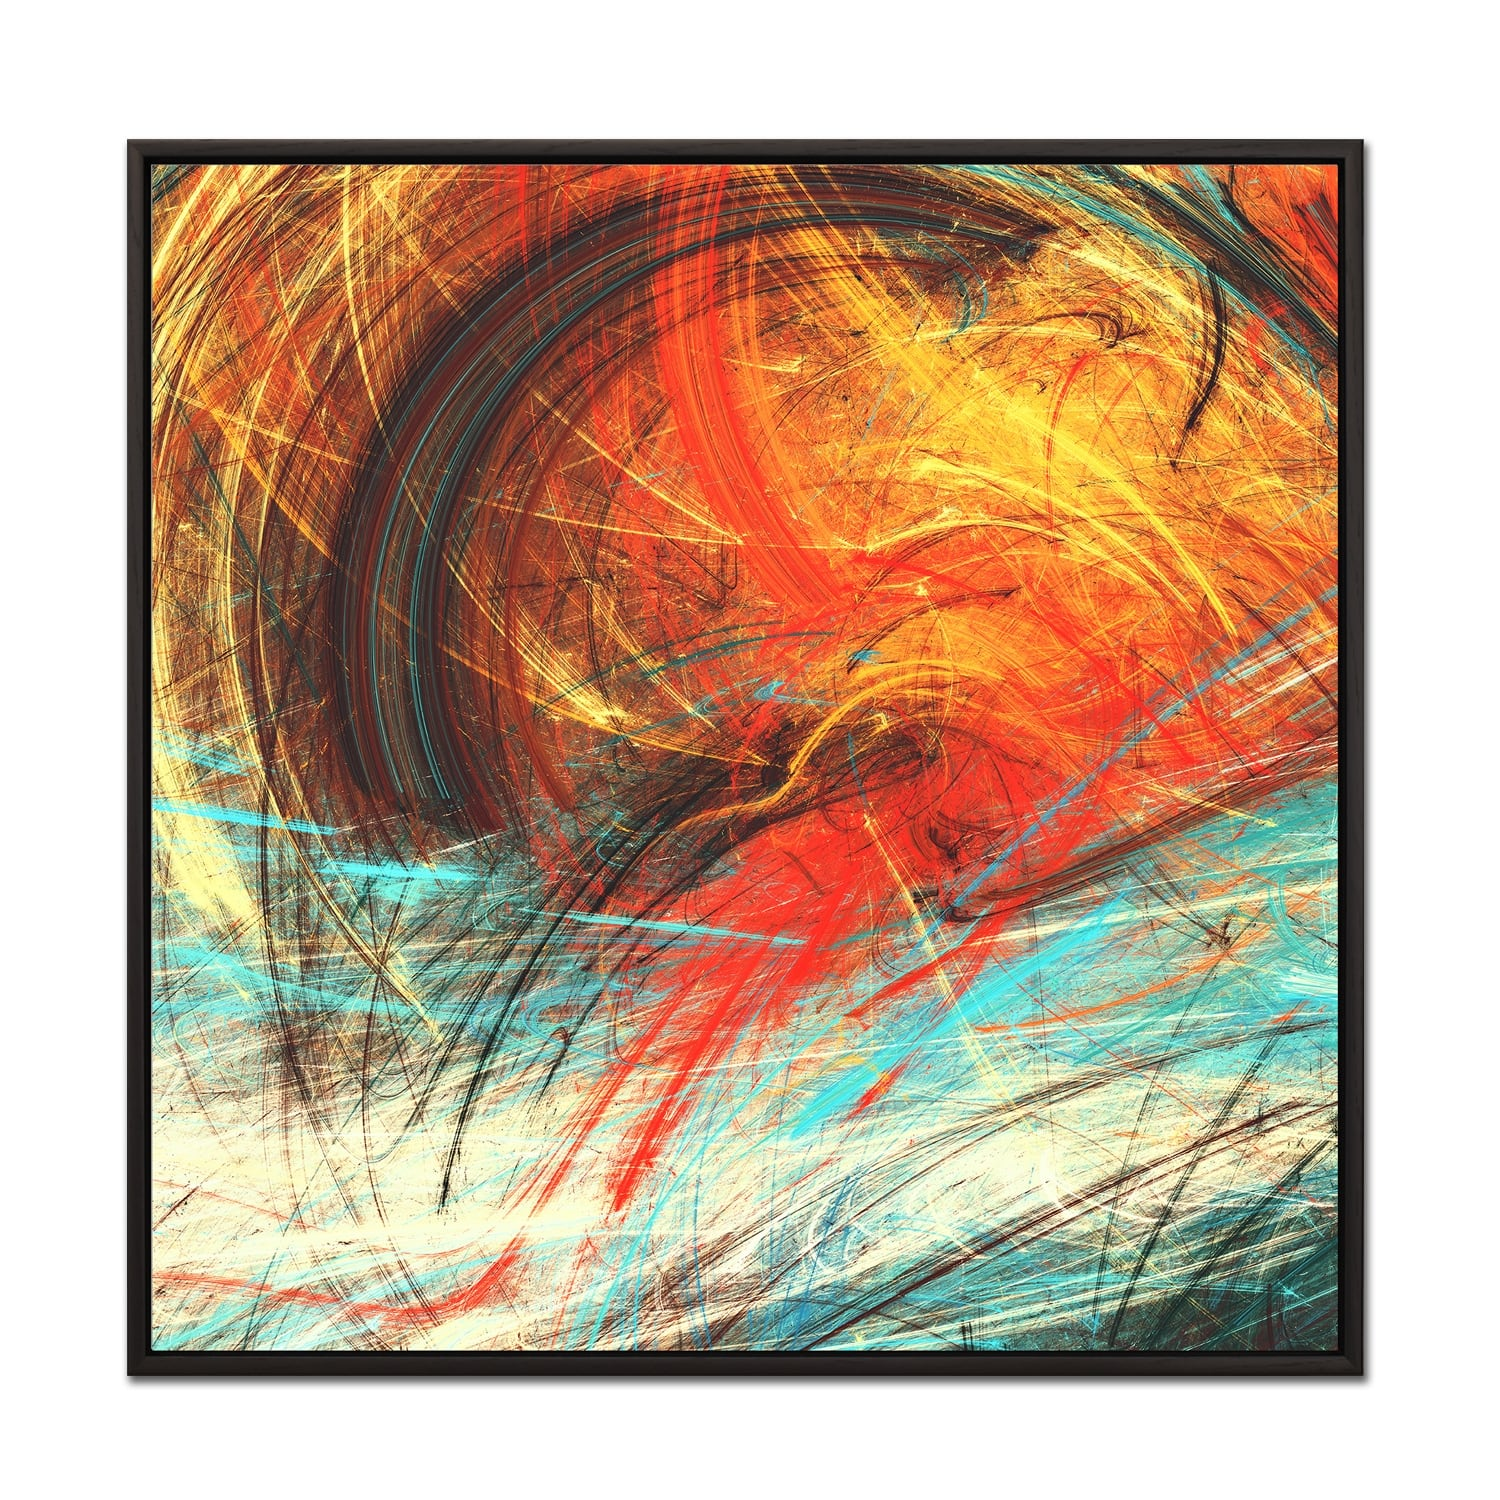 Proxima abstract canvas for a original wall decoration